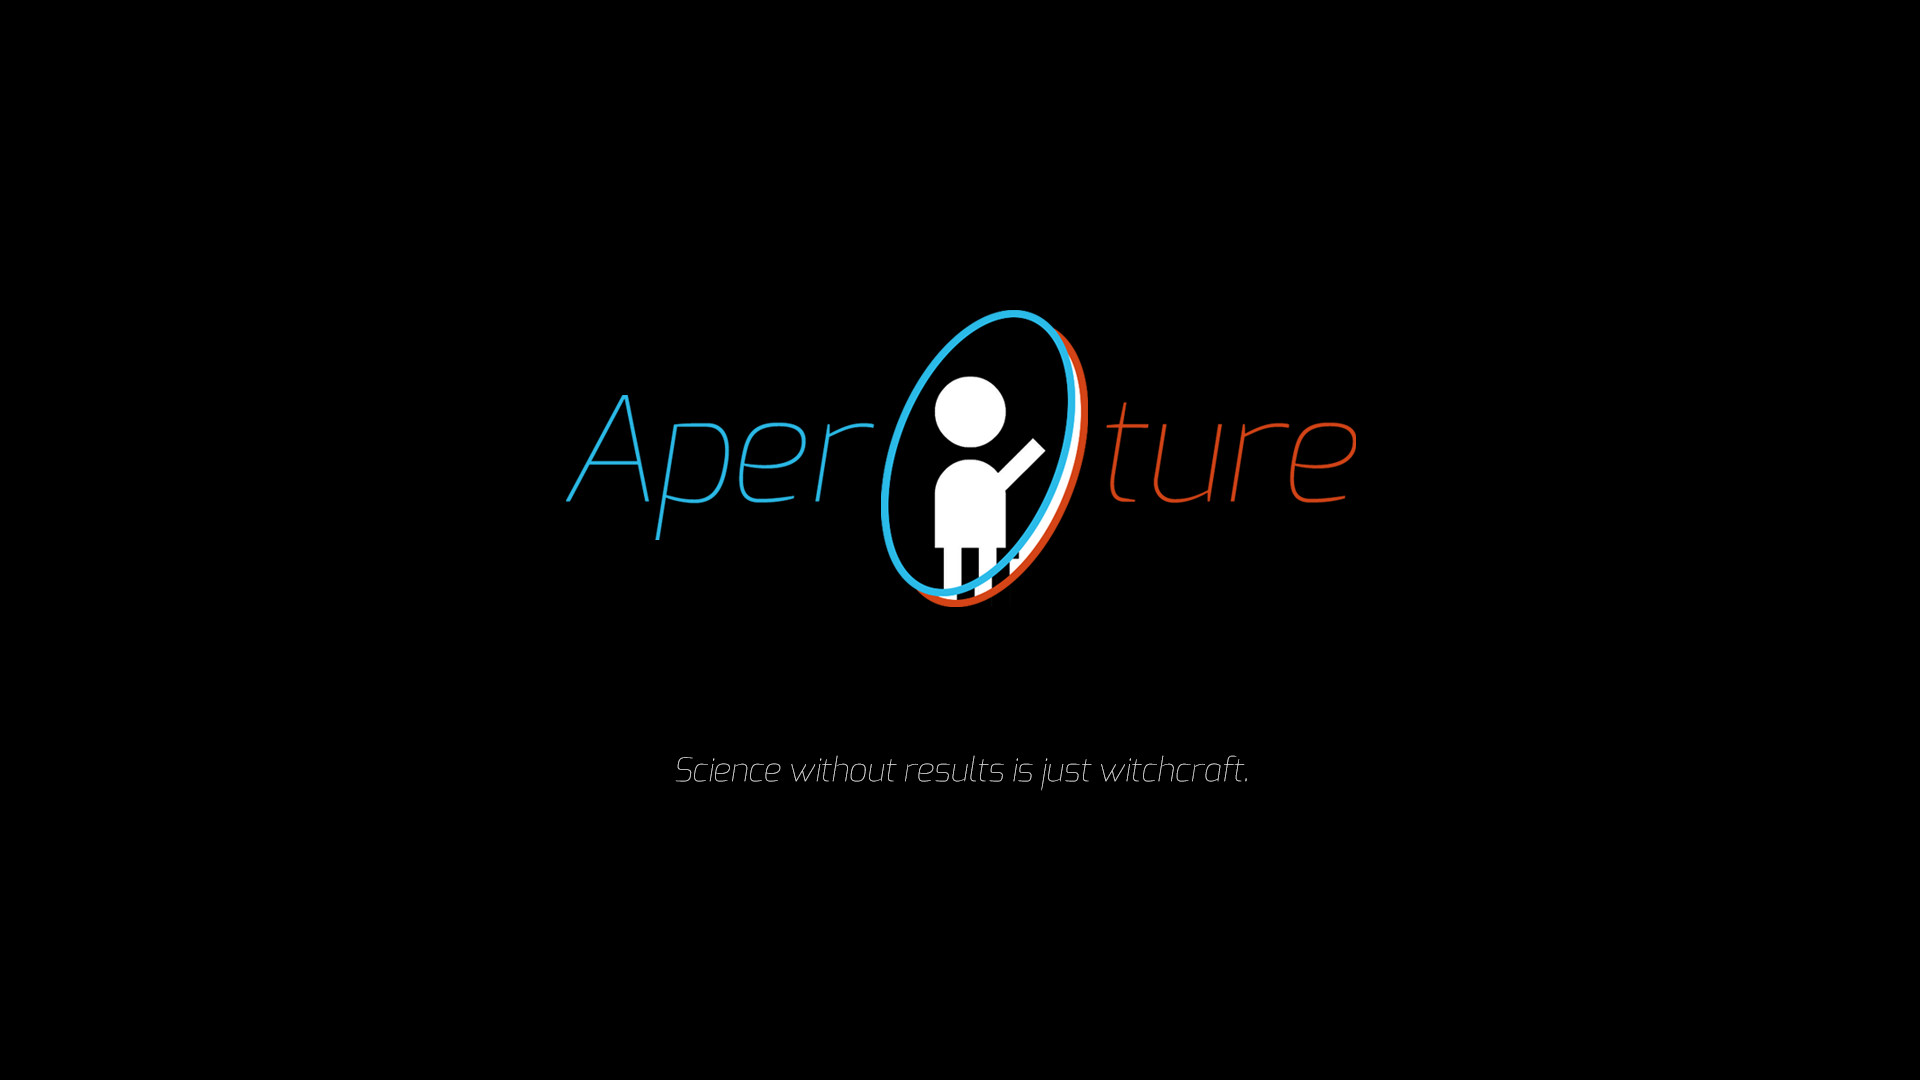 Aperture Science Wallpaper by CupNoodleSoup Aperture Science Wallpaper by  CupNoodleSoup